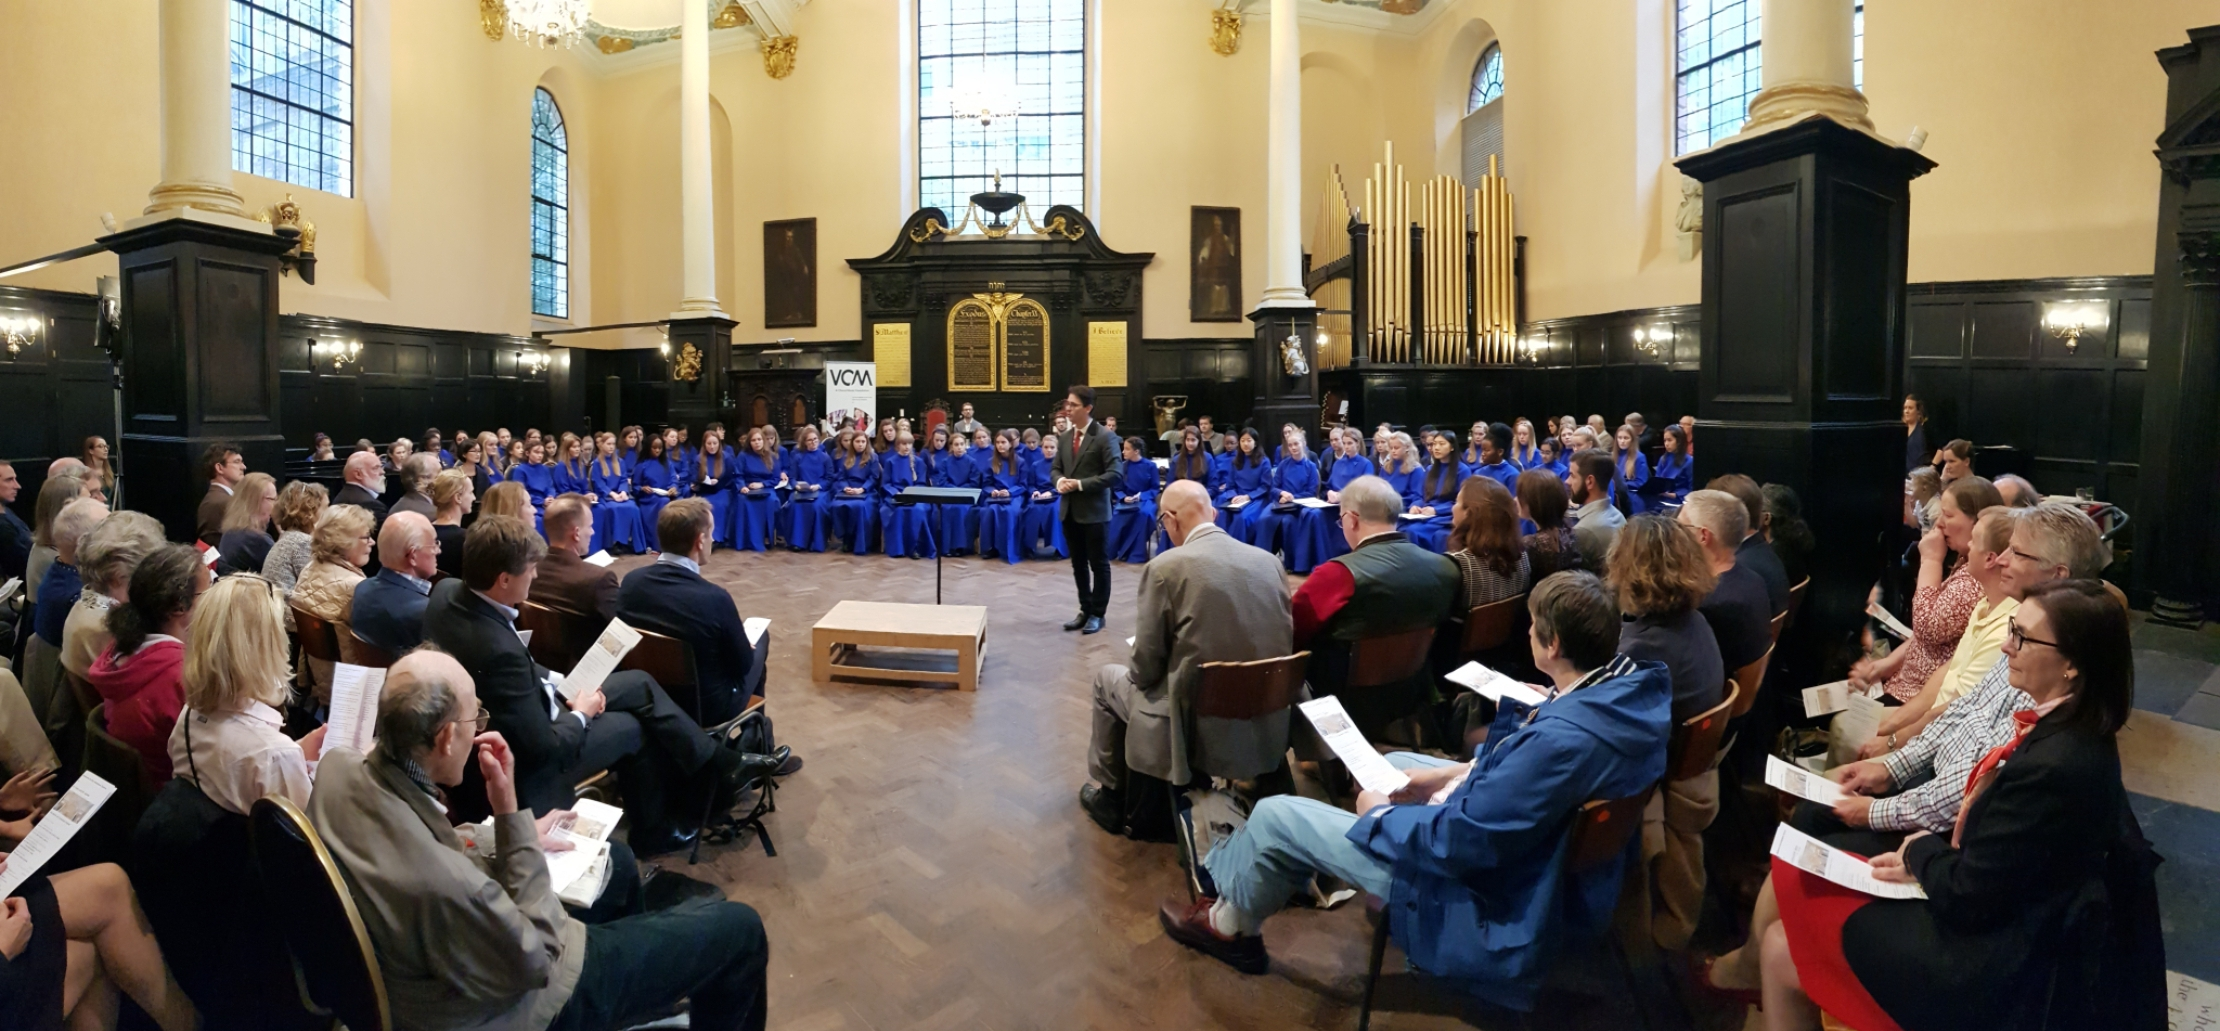 A community singing Evensong